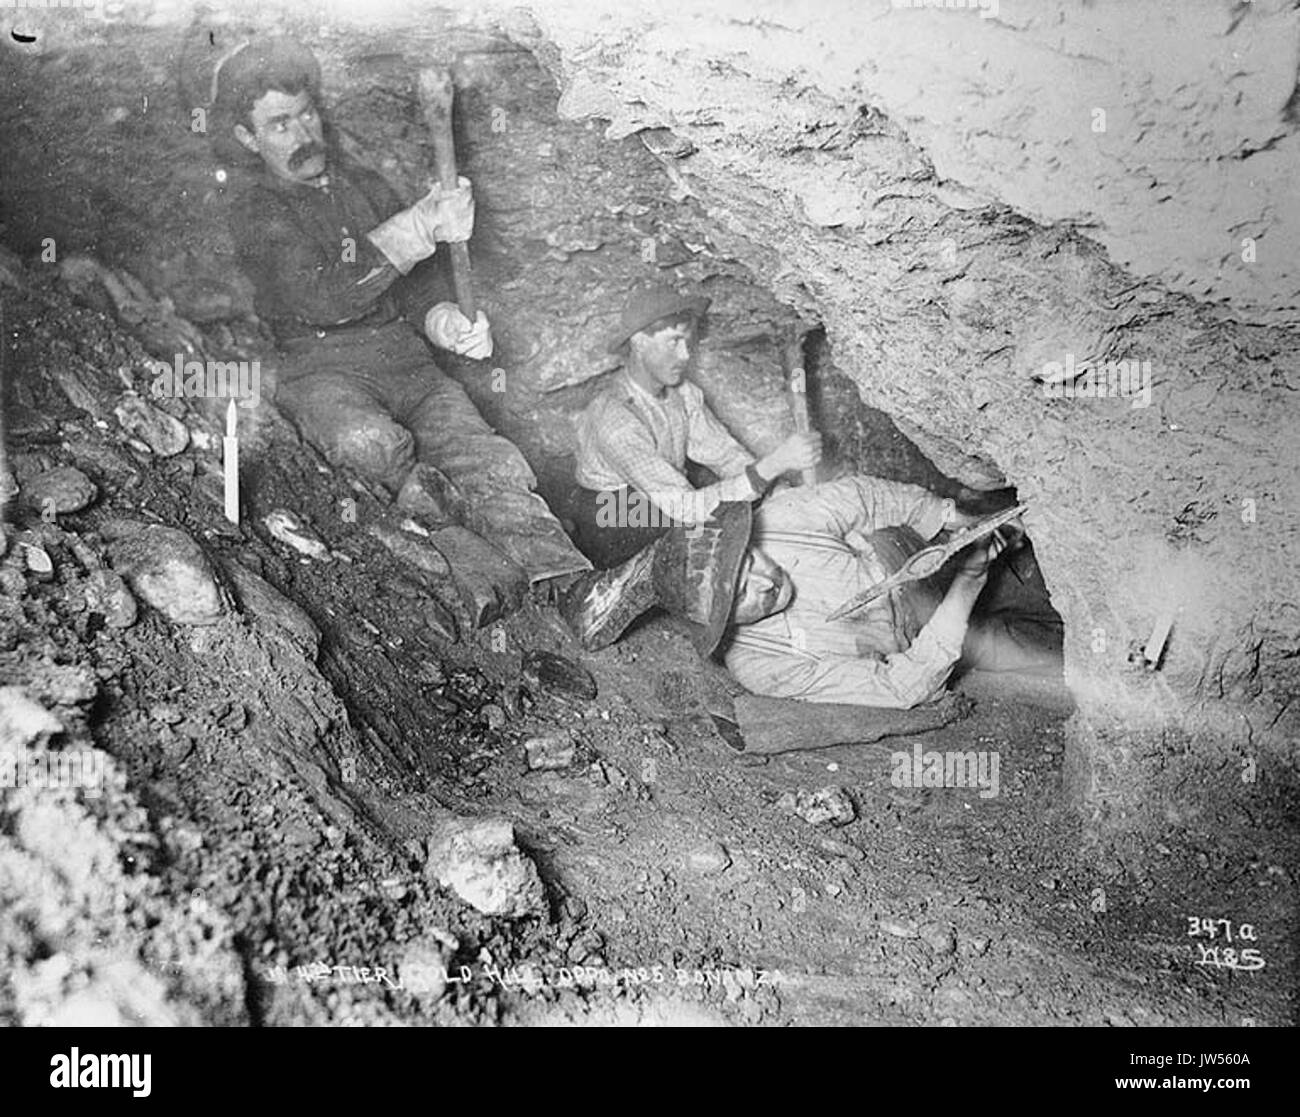 Three miners using pickaxes in underground gold mine lit by candlelight, Gold Hill, Yukon Territory, ca 1898 (HEGG 515) - Stock Image